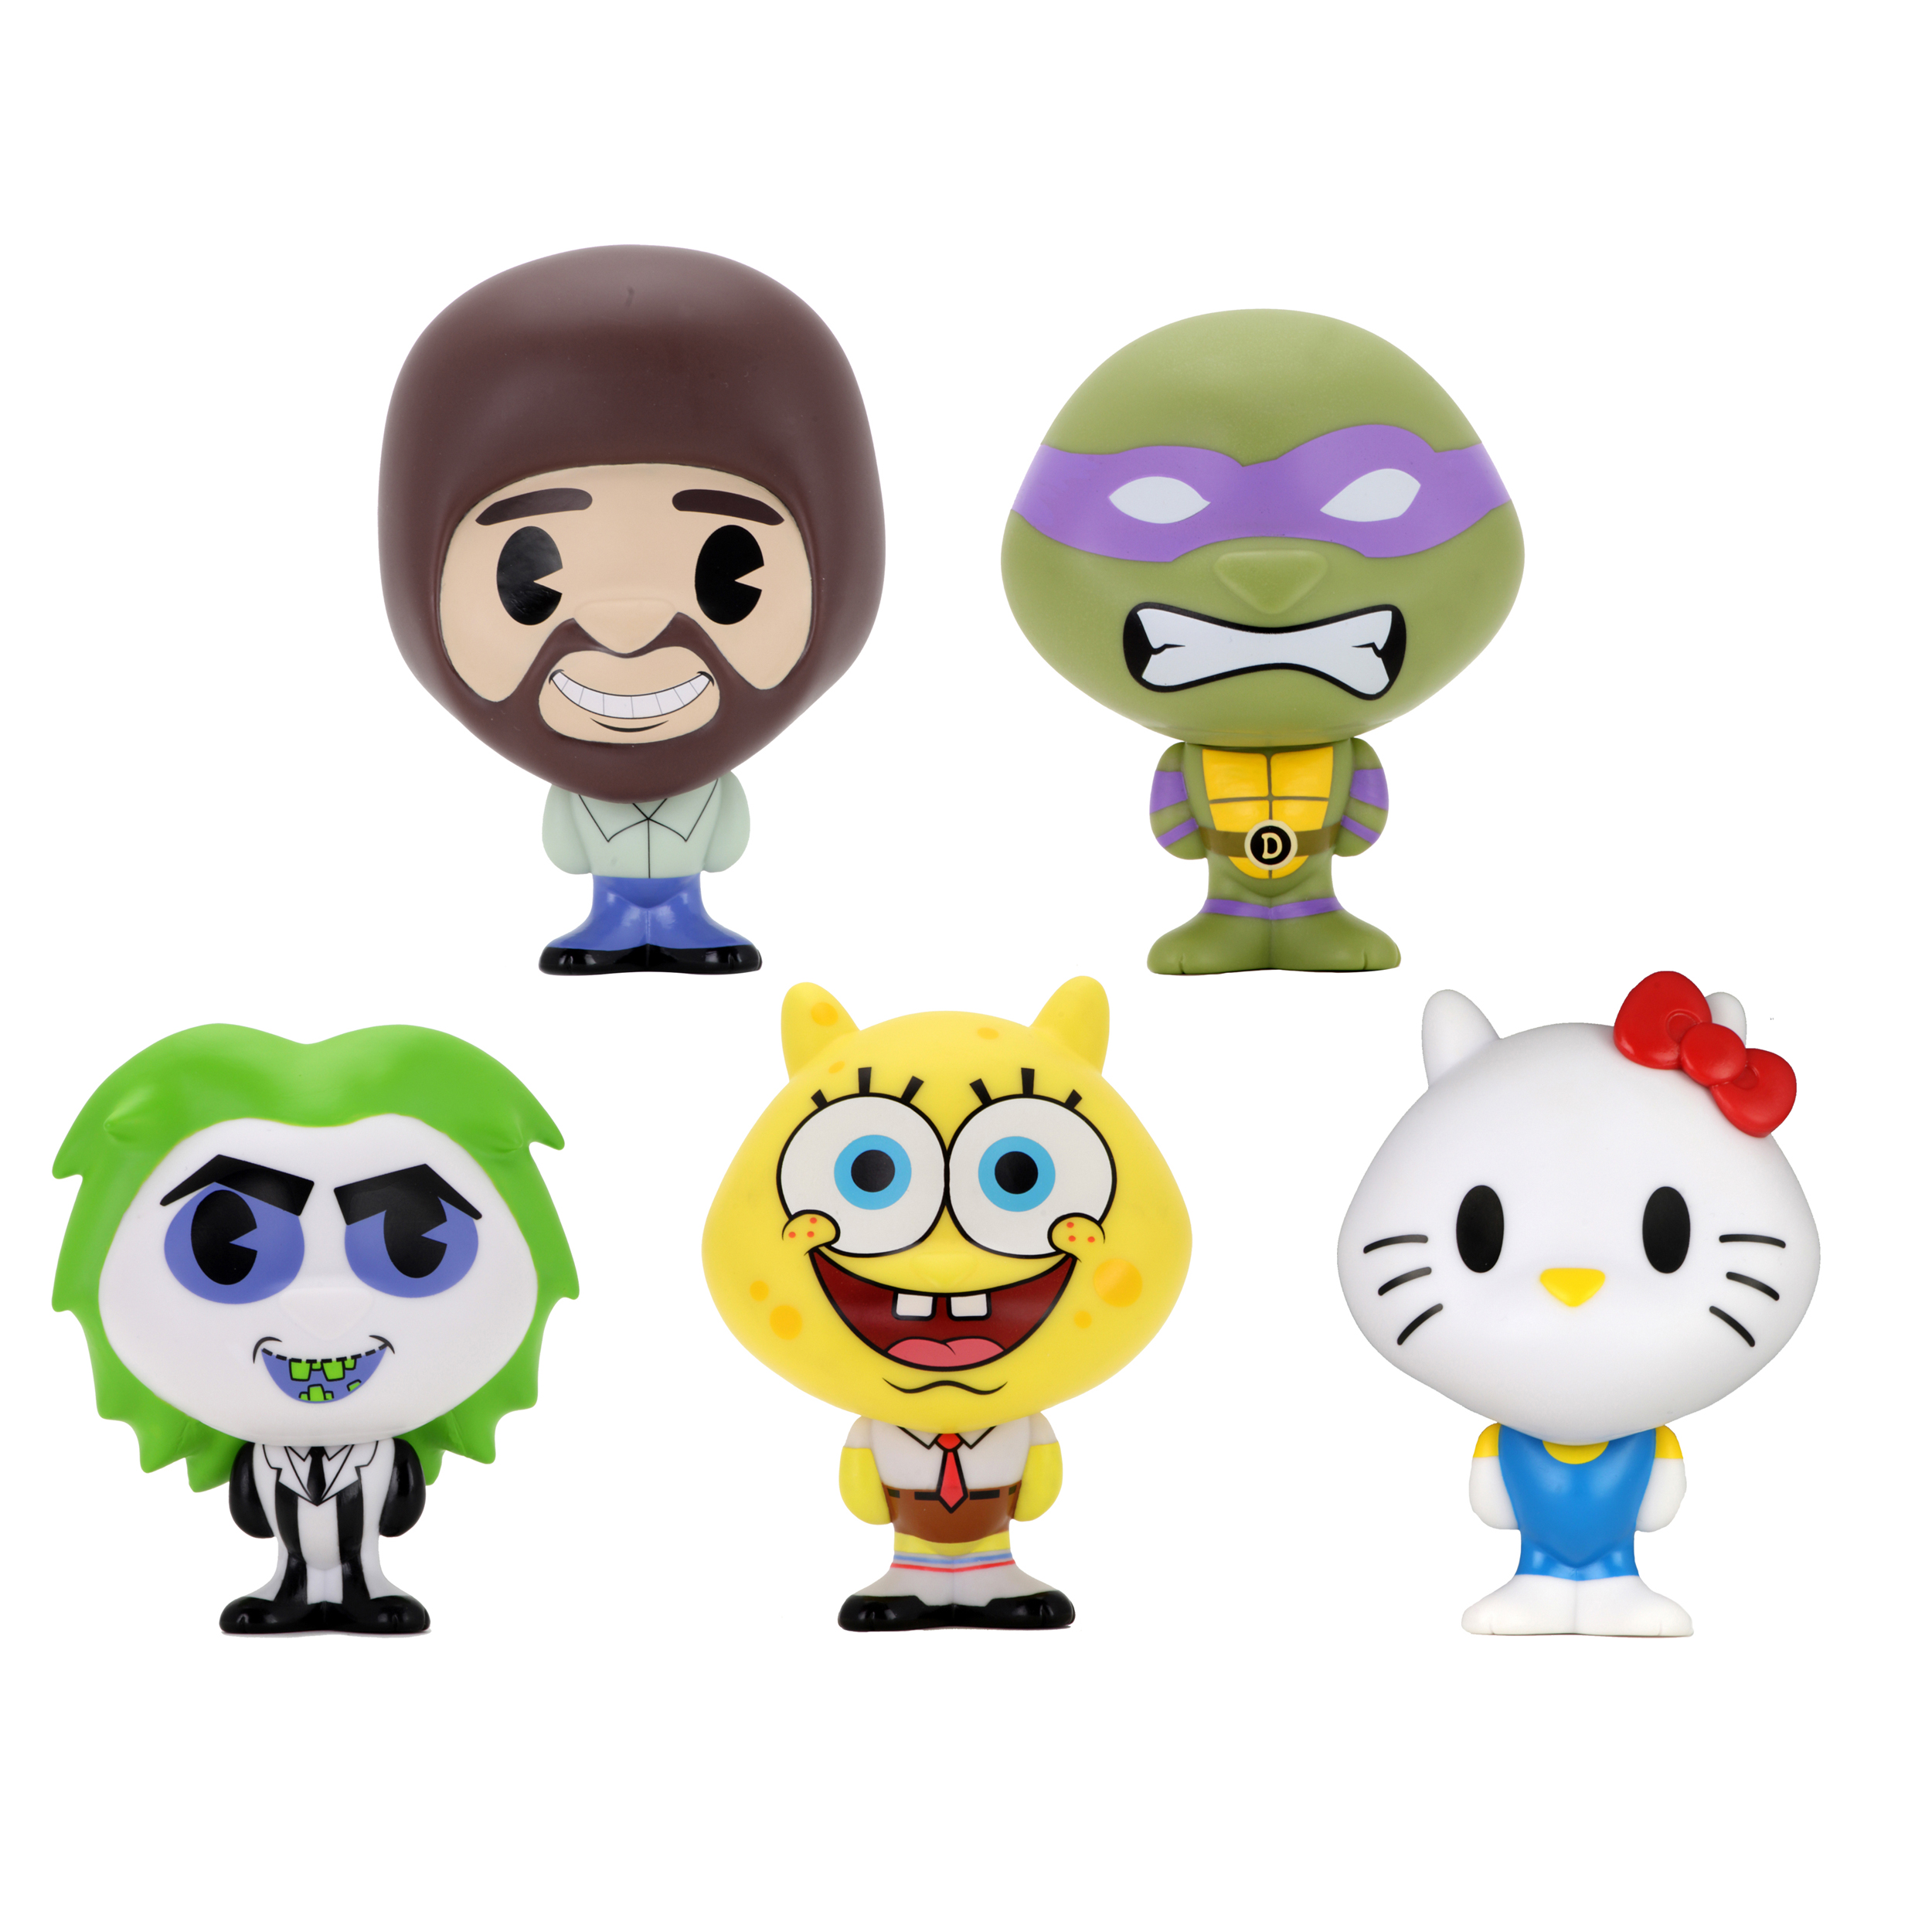 Hello Kitty, Bob Ross, and SpongeBob debut in adorable Kidrobot Bhunny collection 15